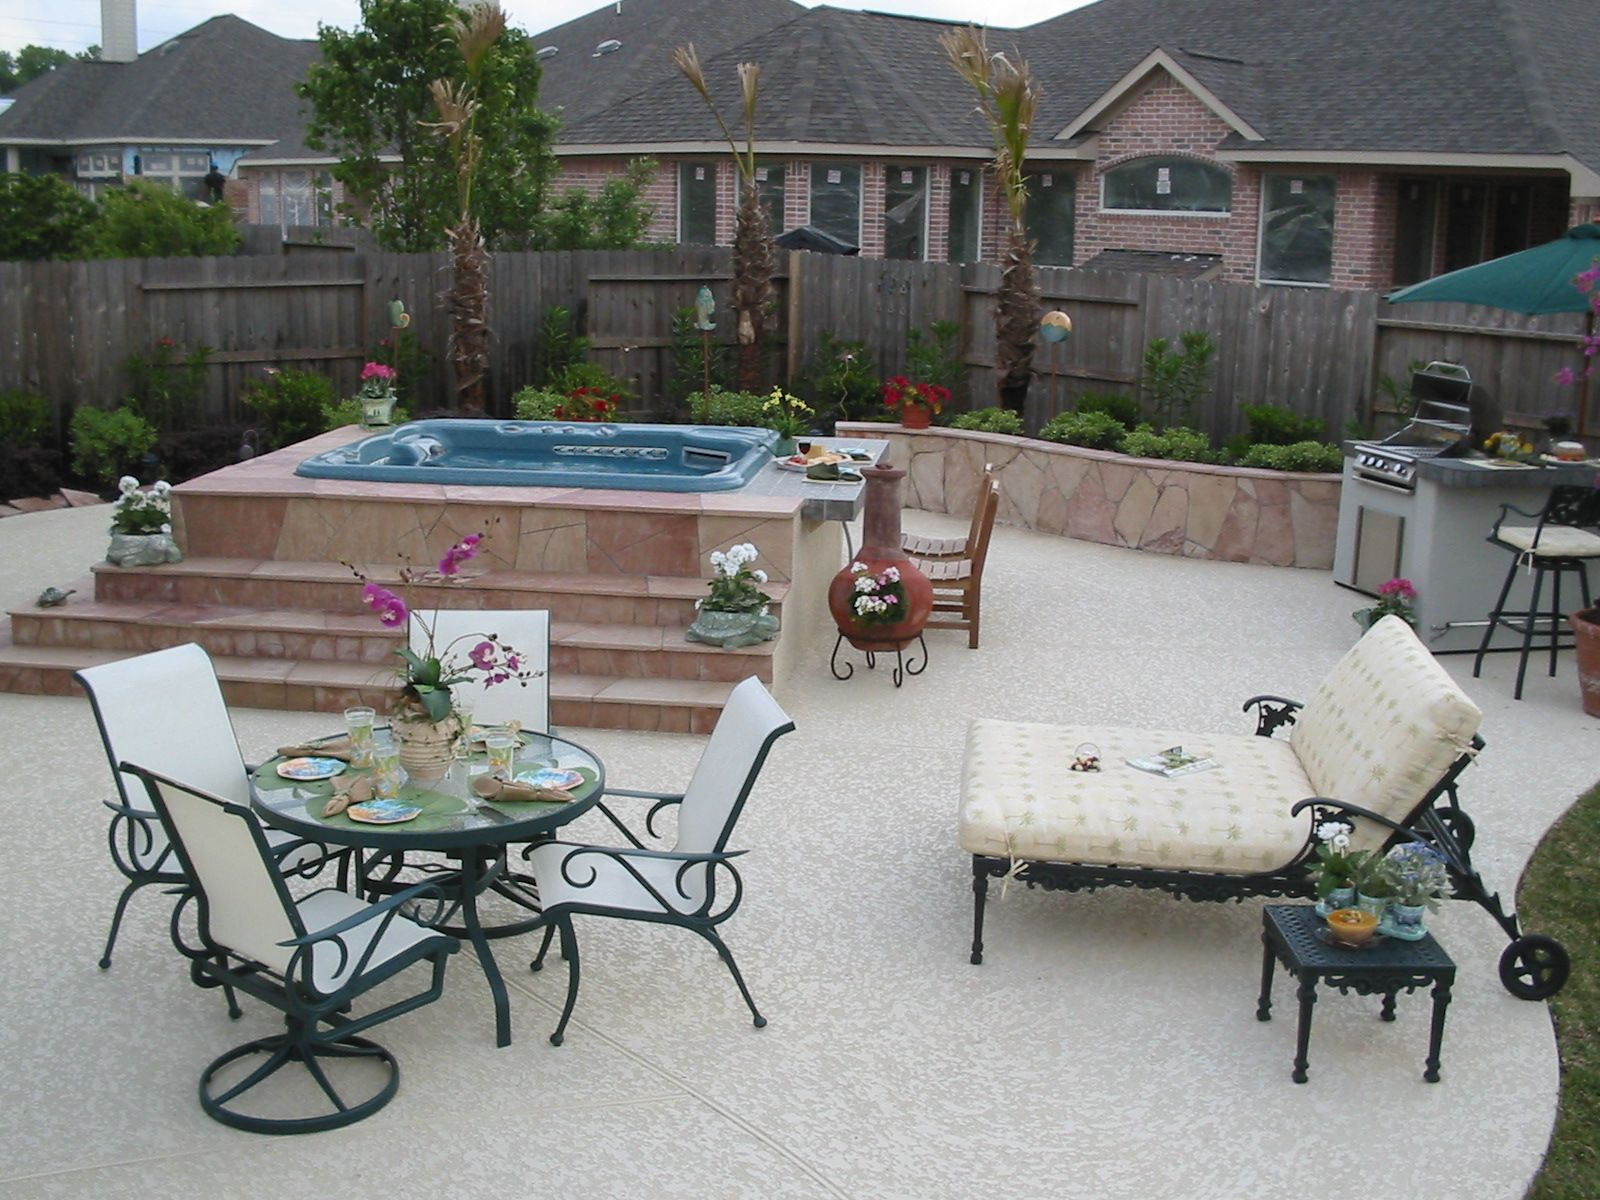 Garden Kitchen Houston Outdoor Kitchen With Hot Tub Outdoor Kitchen Pinterest